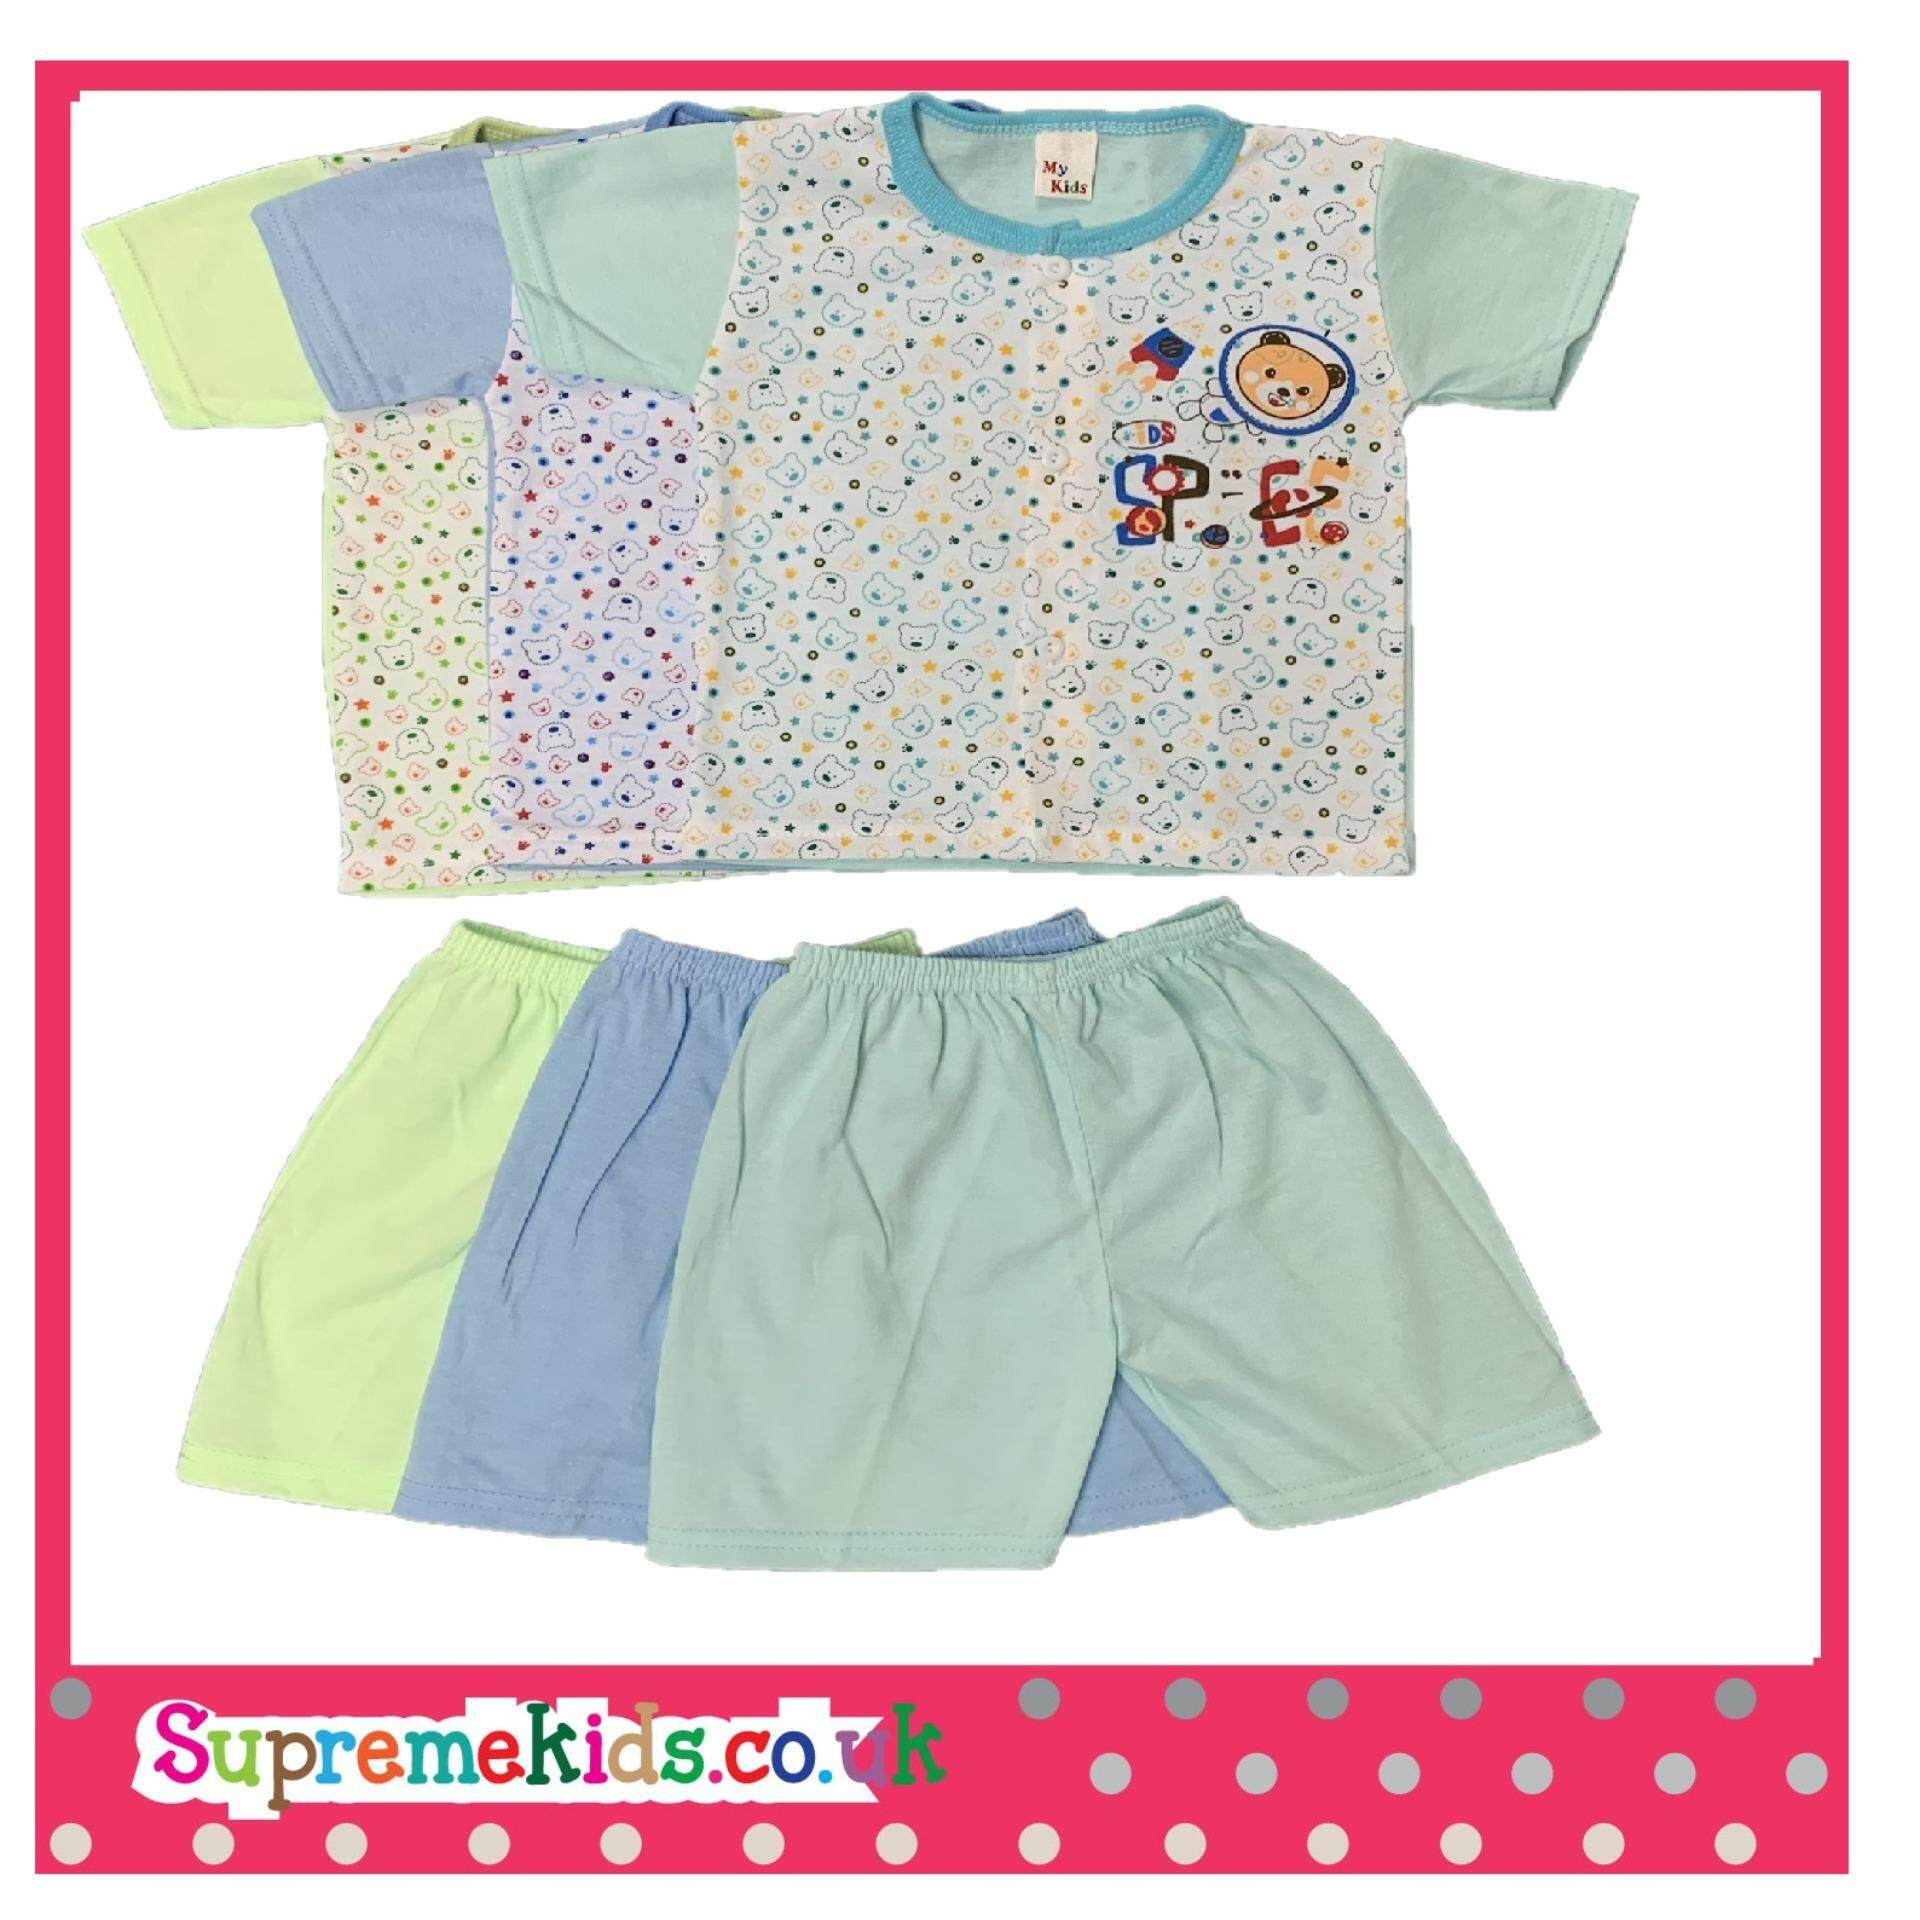 NewBorn & Infants 3 SET Casual wear - 021 (Fit to Age: 6-18Mth Mass:8-12kg Height:69-80CM)